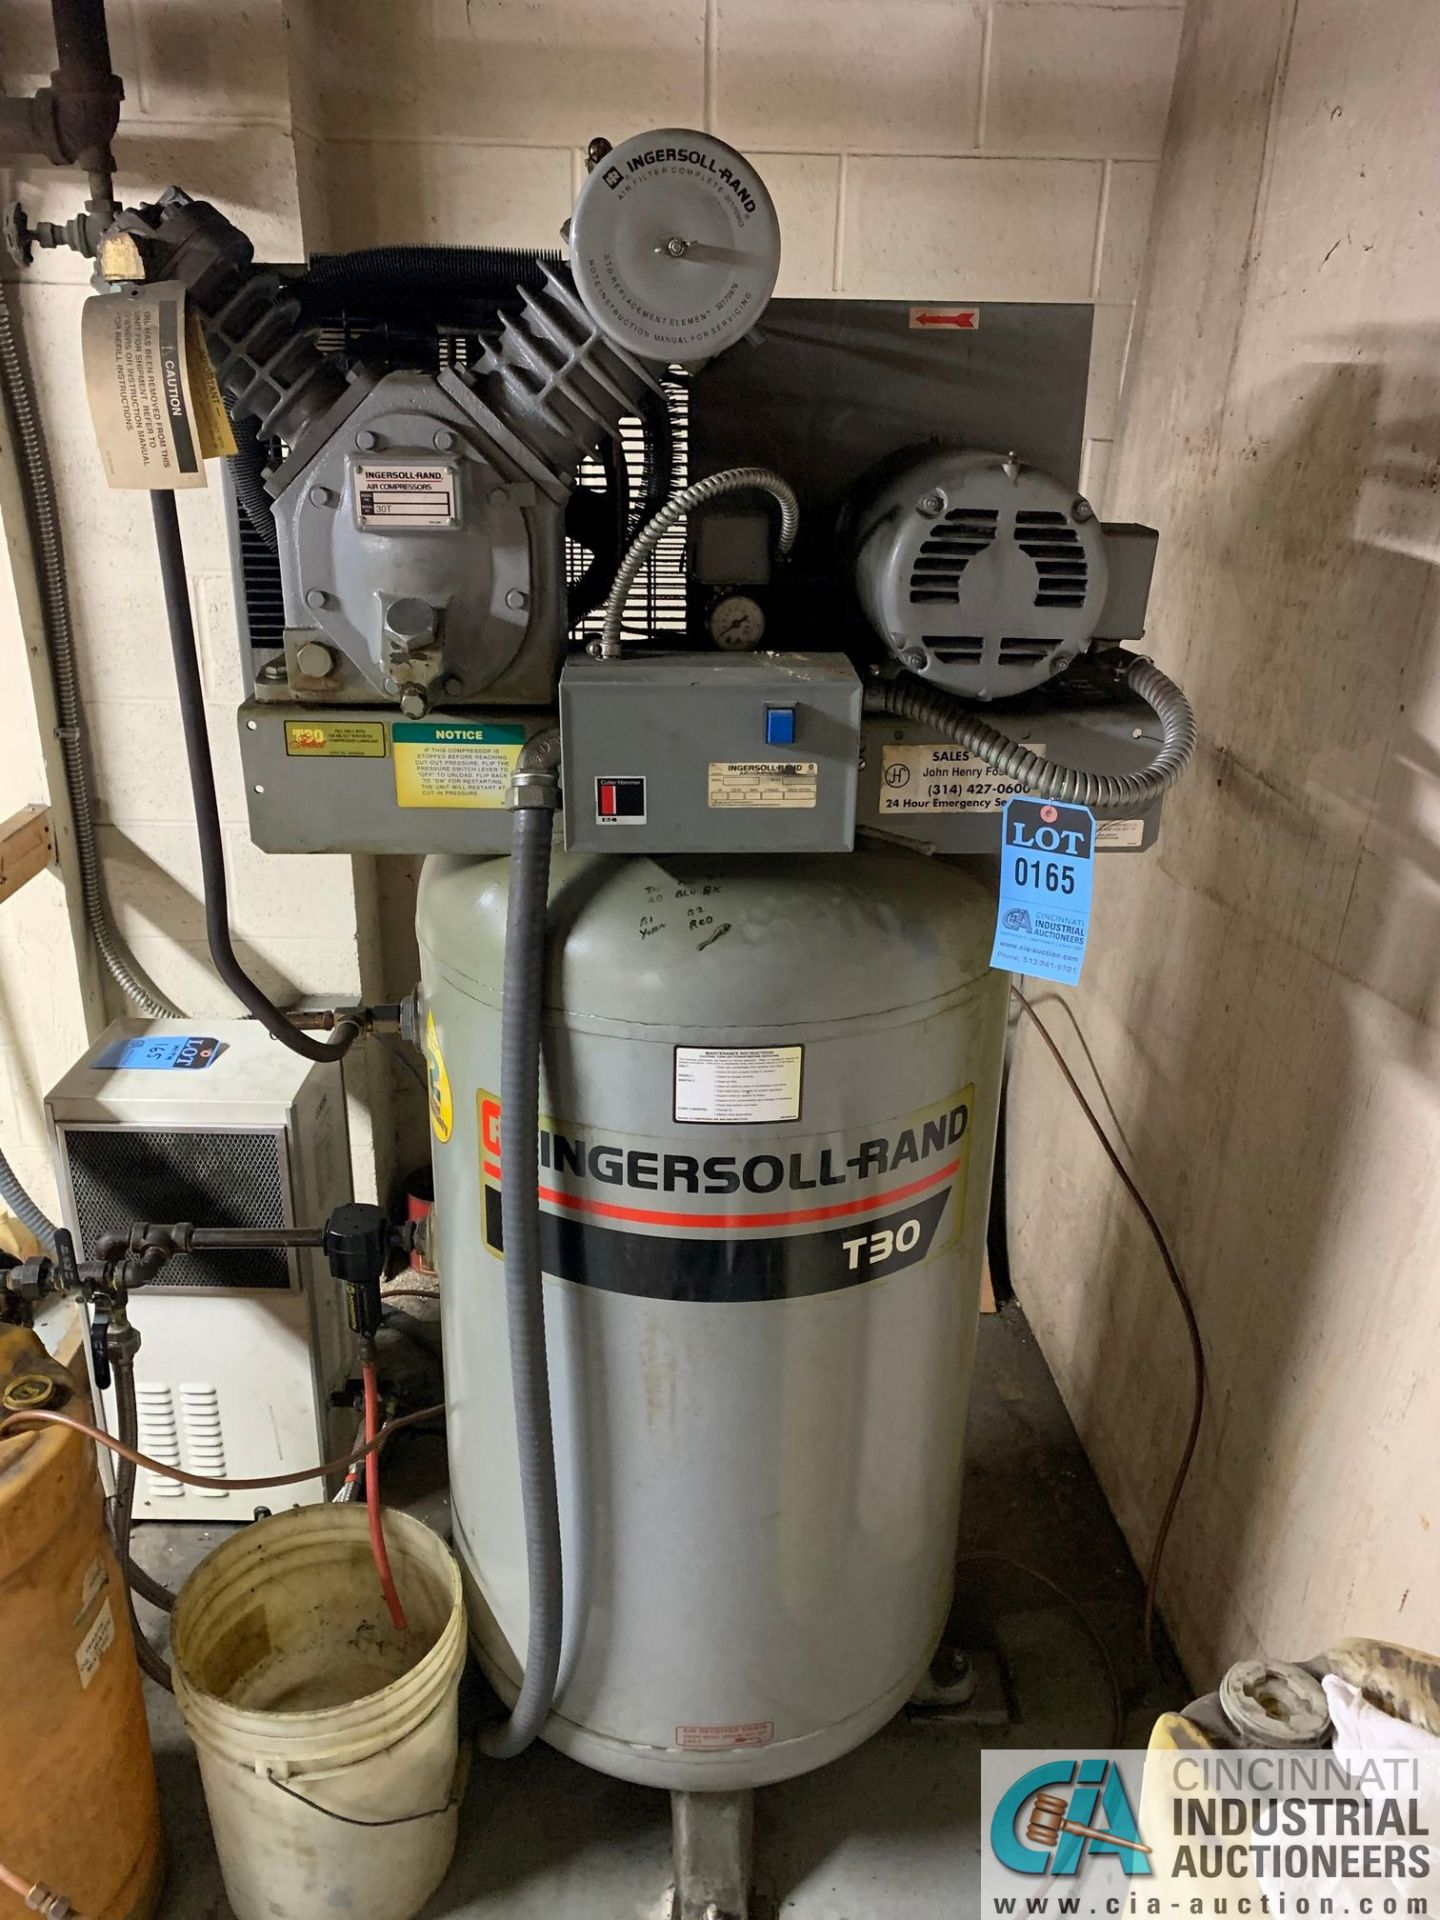 7.5 HP INGERSOLL-RAND MODEL 2475N7.5230 VERTICAL TANK AIR COMPRESSOR, WITH CURTIS MODEL CHT35 - Image 2 of 6